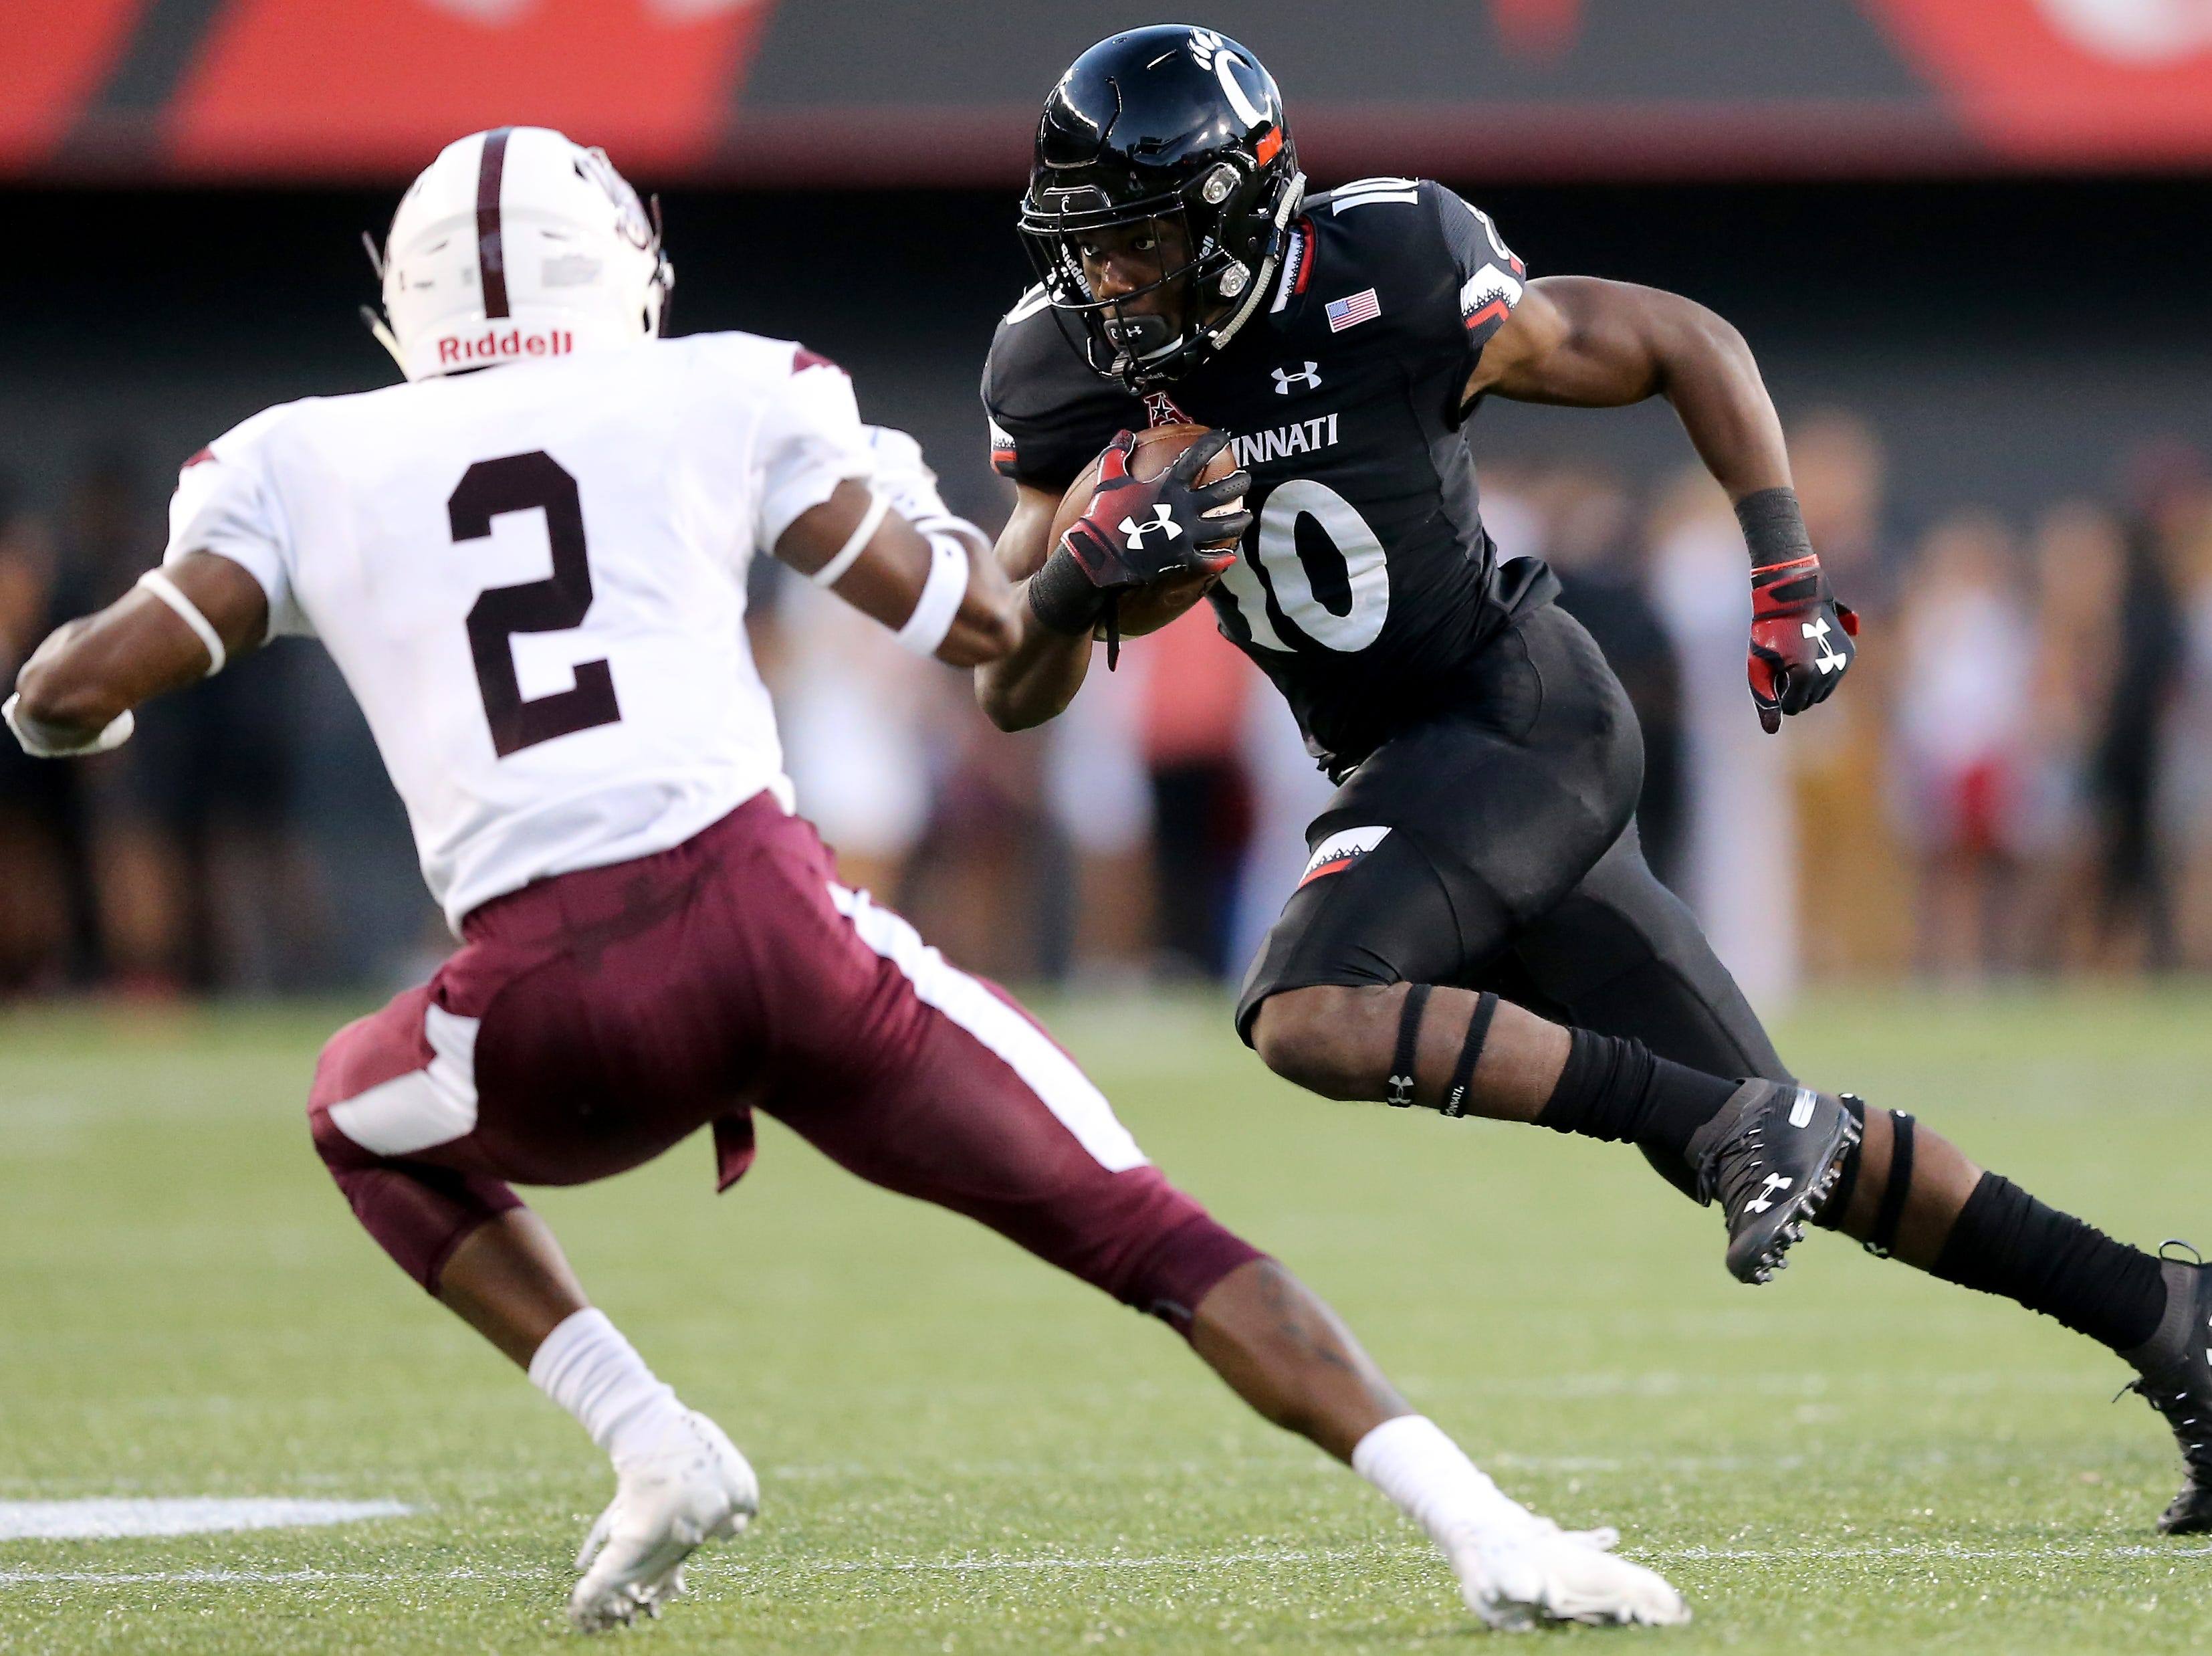 Cincinnati Bearcats running back Charles McClelland (10) carries the ball in the first quarter during a college football game between the Cincinnati Bearcats and the Alabama A&M Bulldogs, Saturday, Sept. 15, 2018, at Nippert Stadium in Cincinnati.